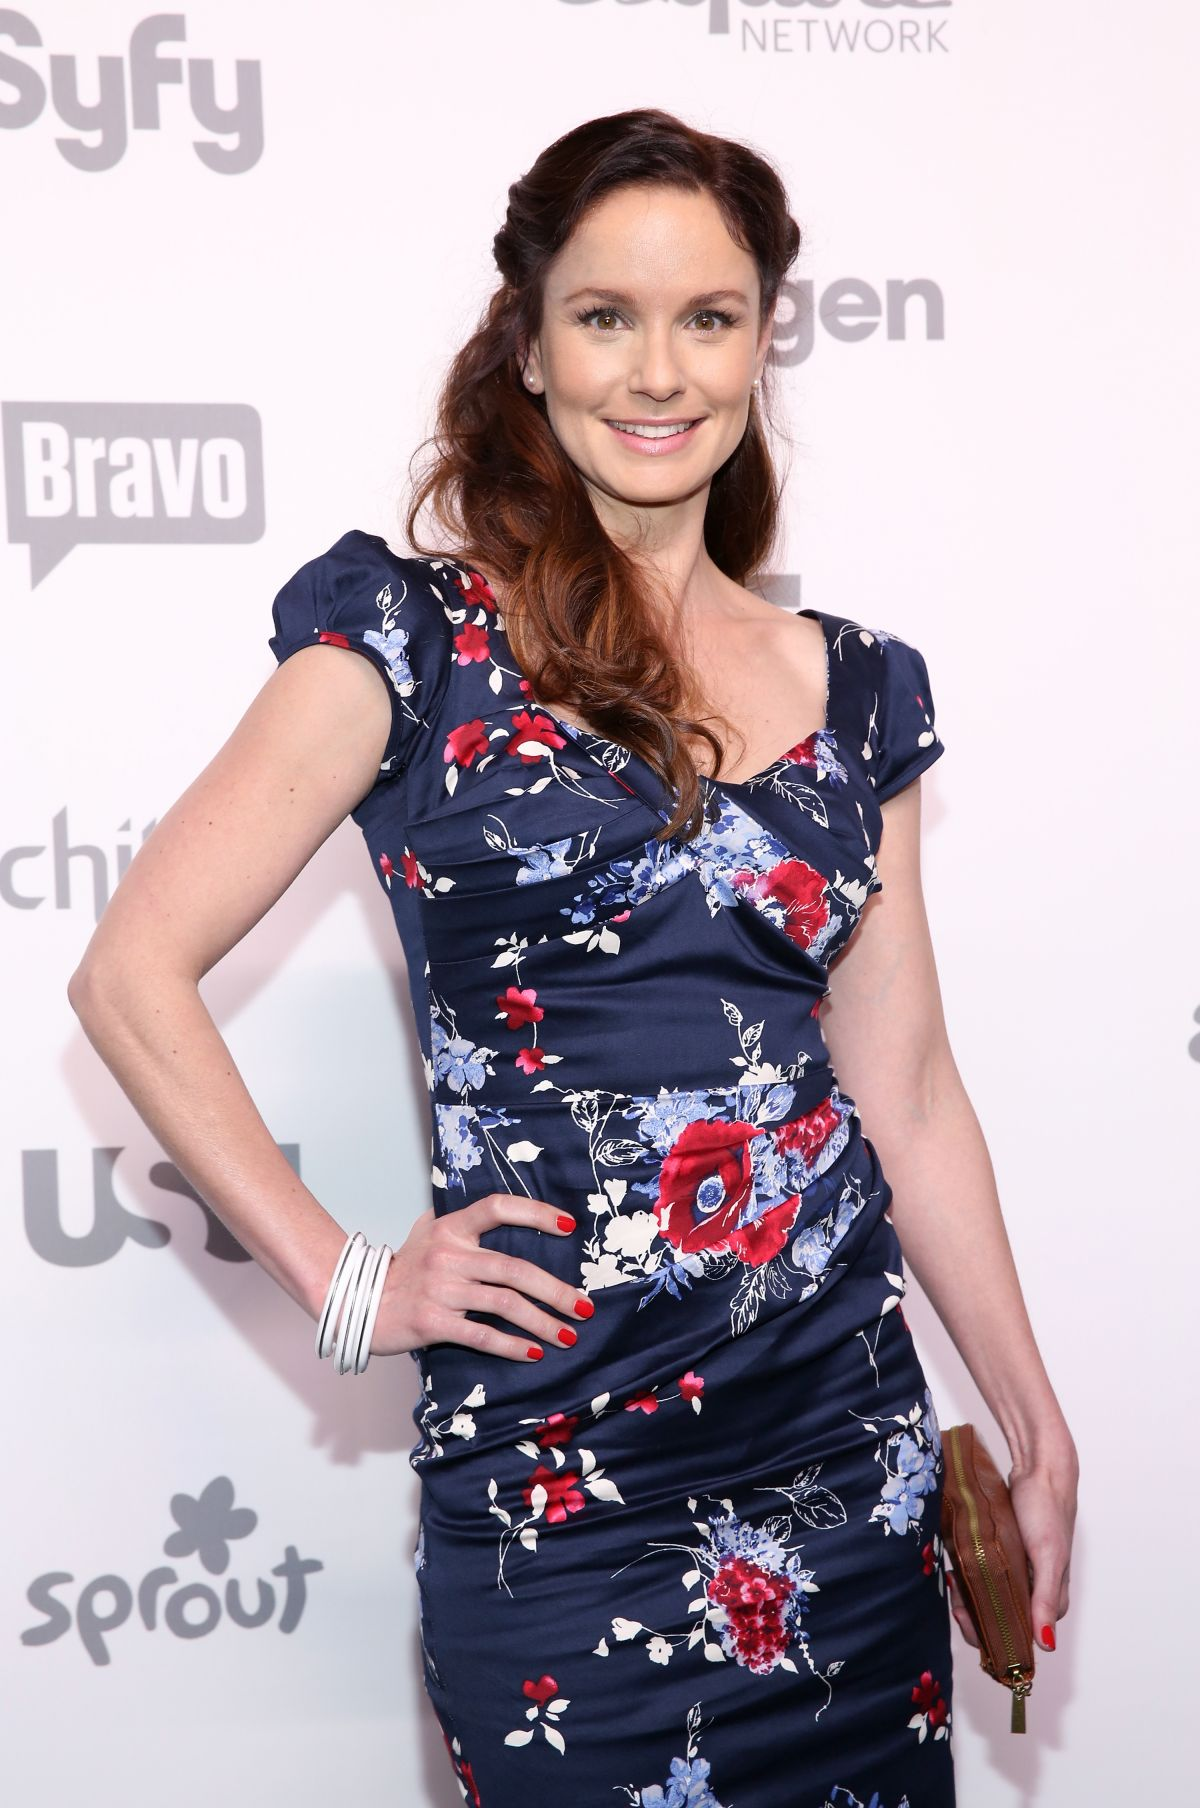 SARAH WAYNE CALLIES at 2015 NBC/Universal Cable Entertainment Upfront in New York